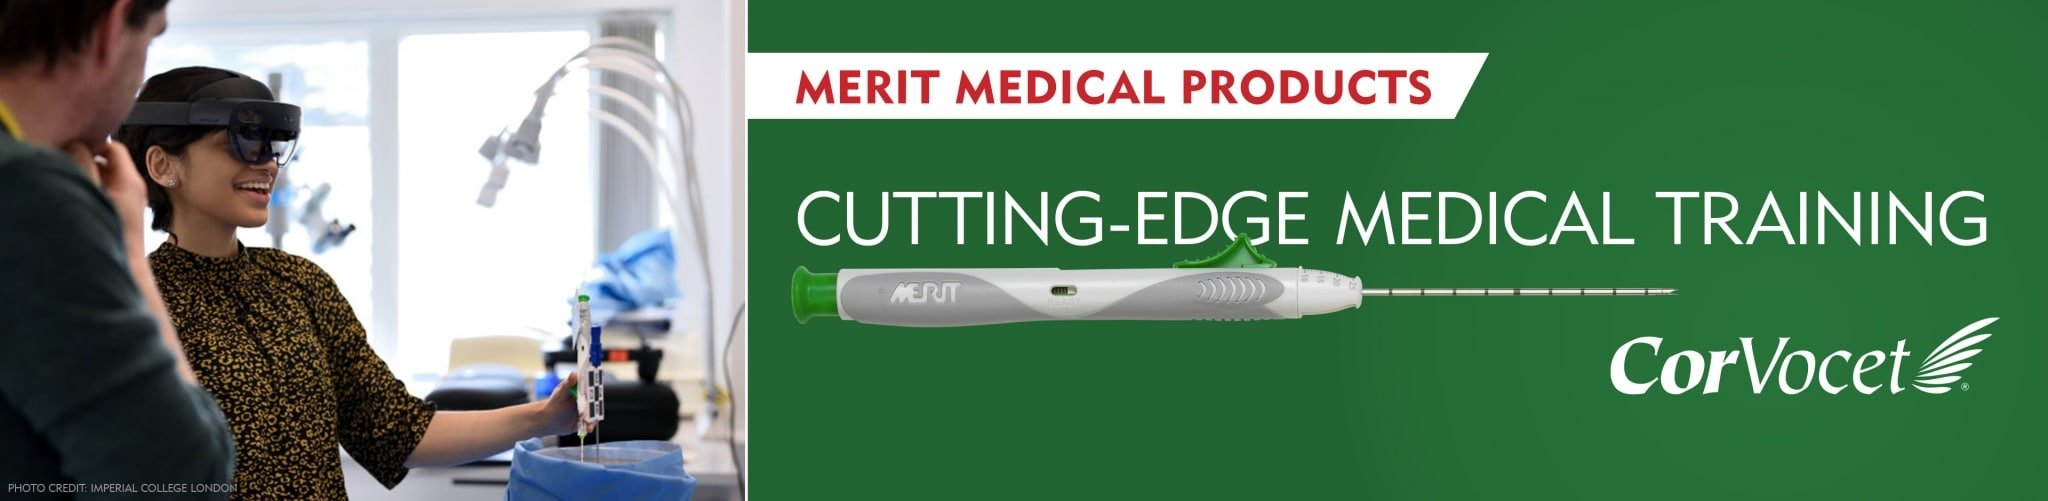 Merit Medical Products Support Cutting-Edge Medical Training V2